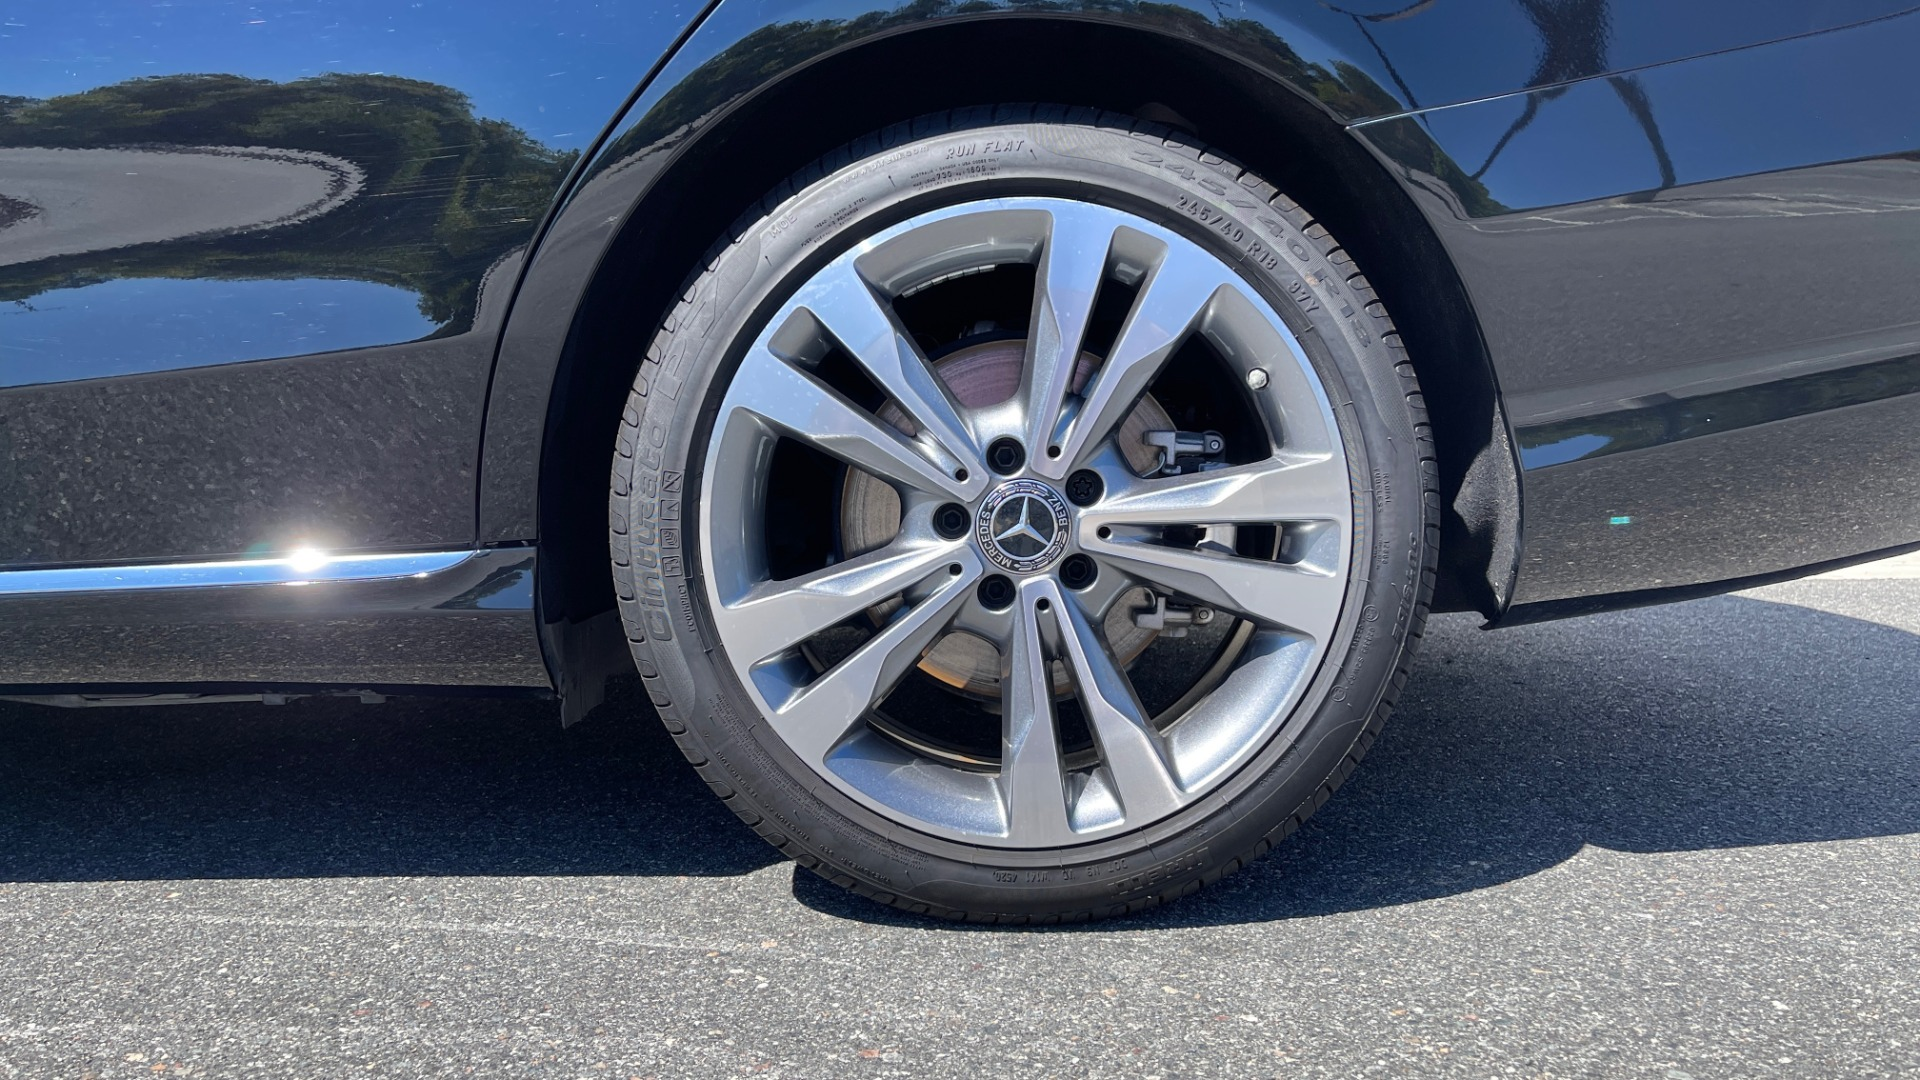 Used 2018 Mercedes-Benz C-CLASS C 300 PREMIUM / APPLE CARPLAY / SUNROOF / REARVIEW for sale $31,995 at Formula Imports in Charlotte NC 28227 59